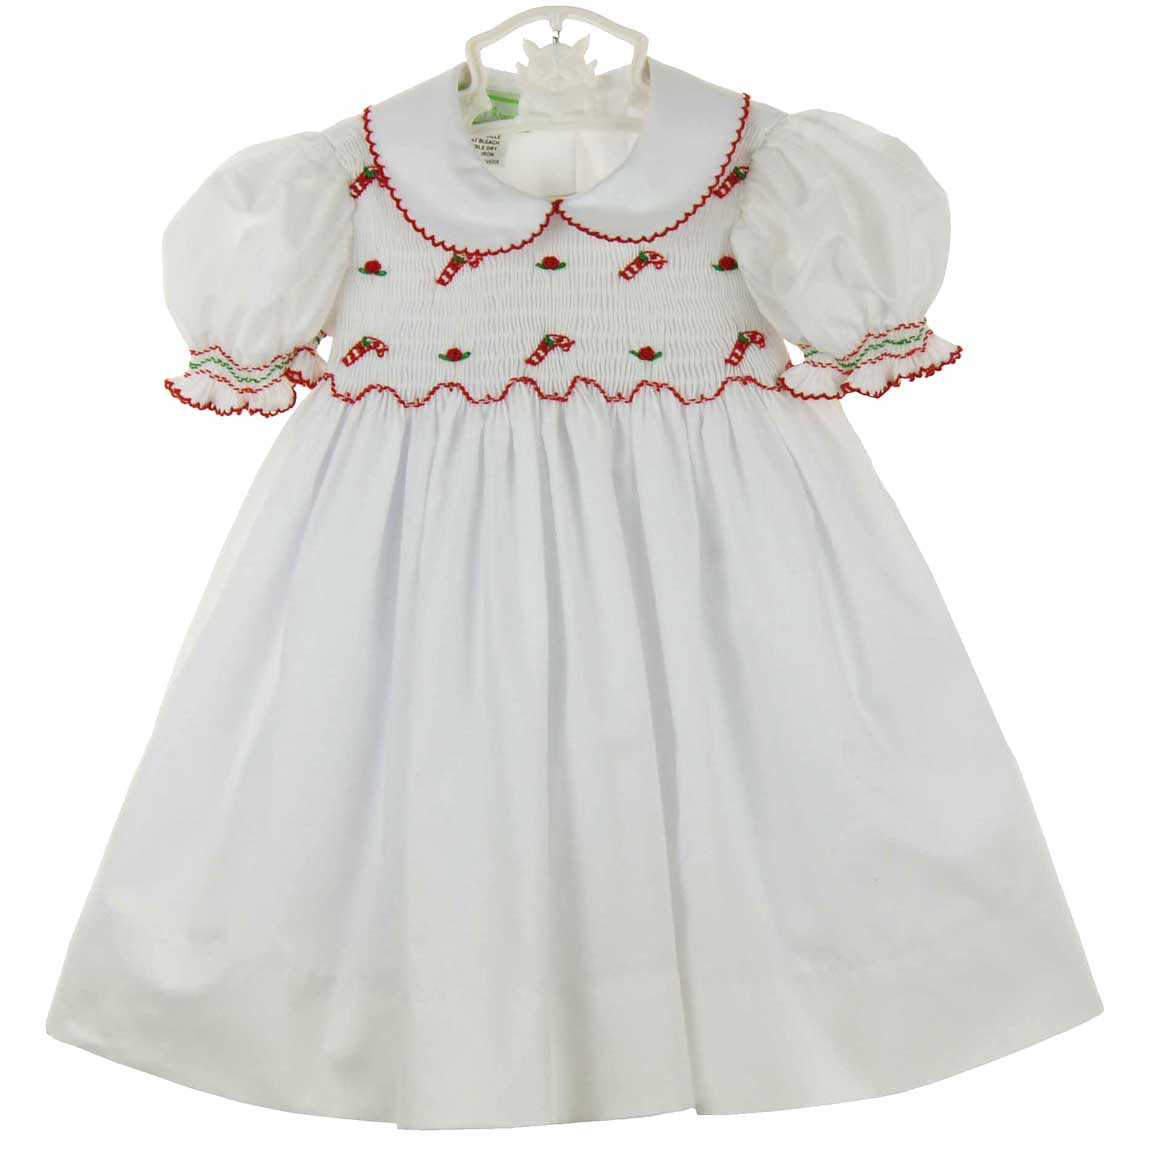 Little Threads White Smocked Dress With Embroidered Candy